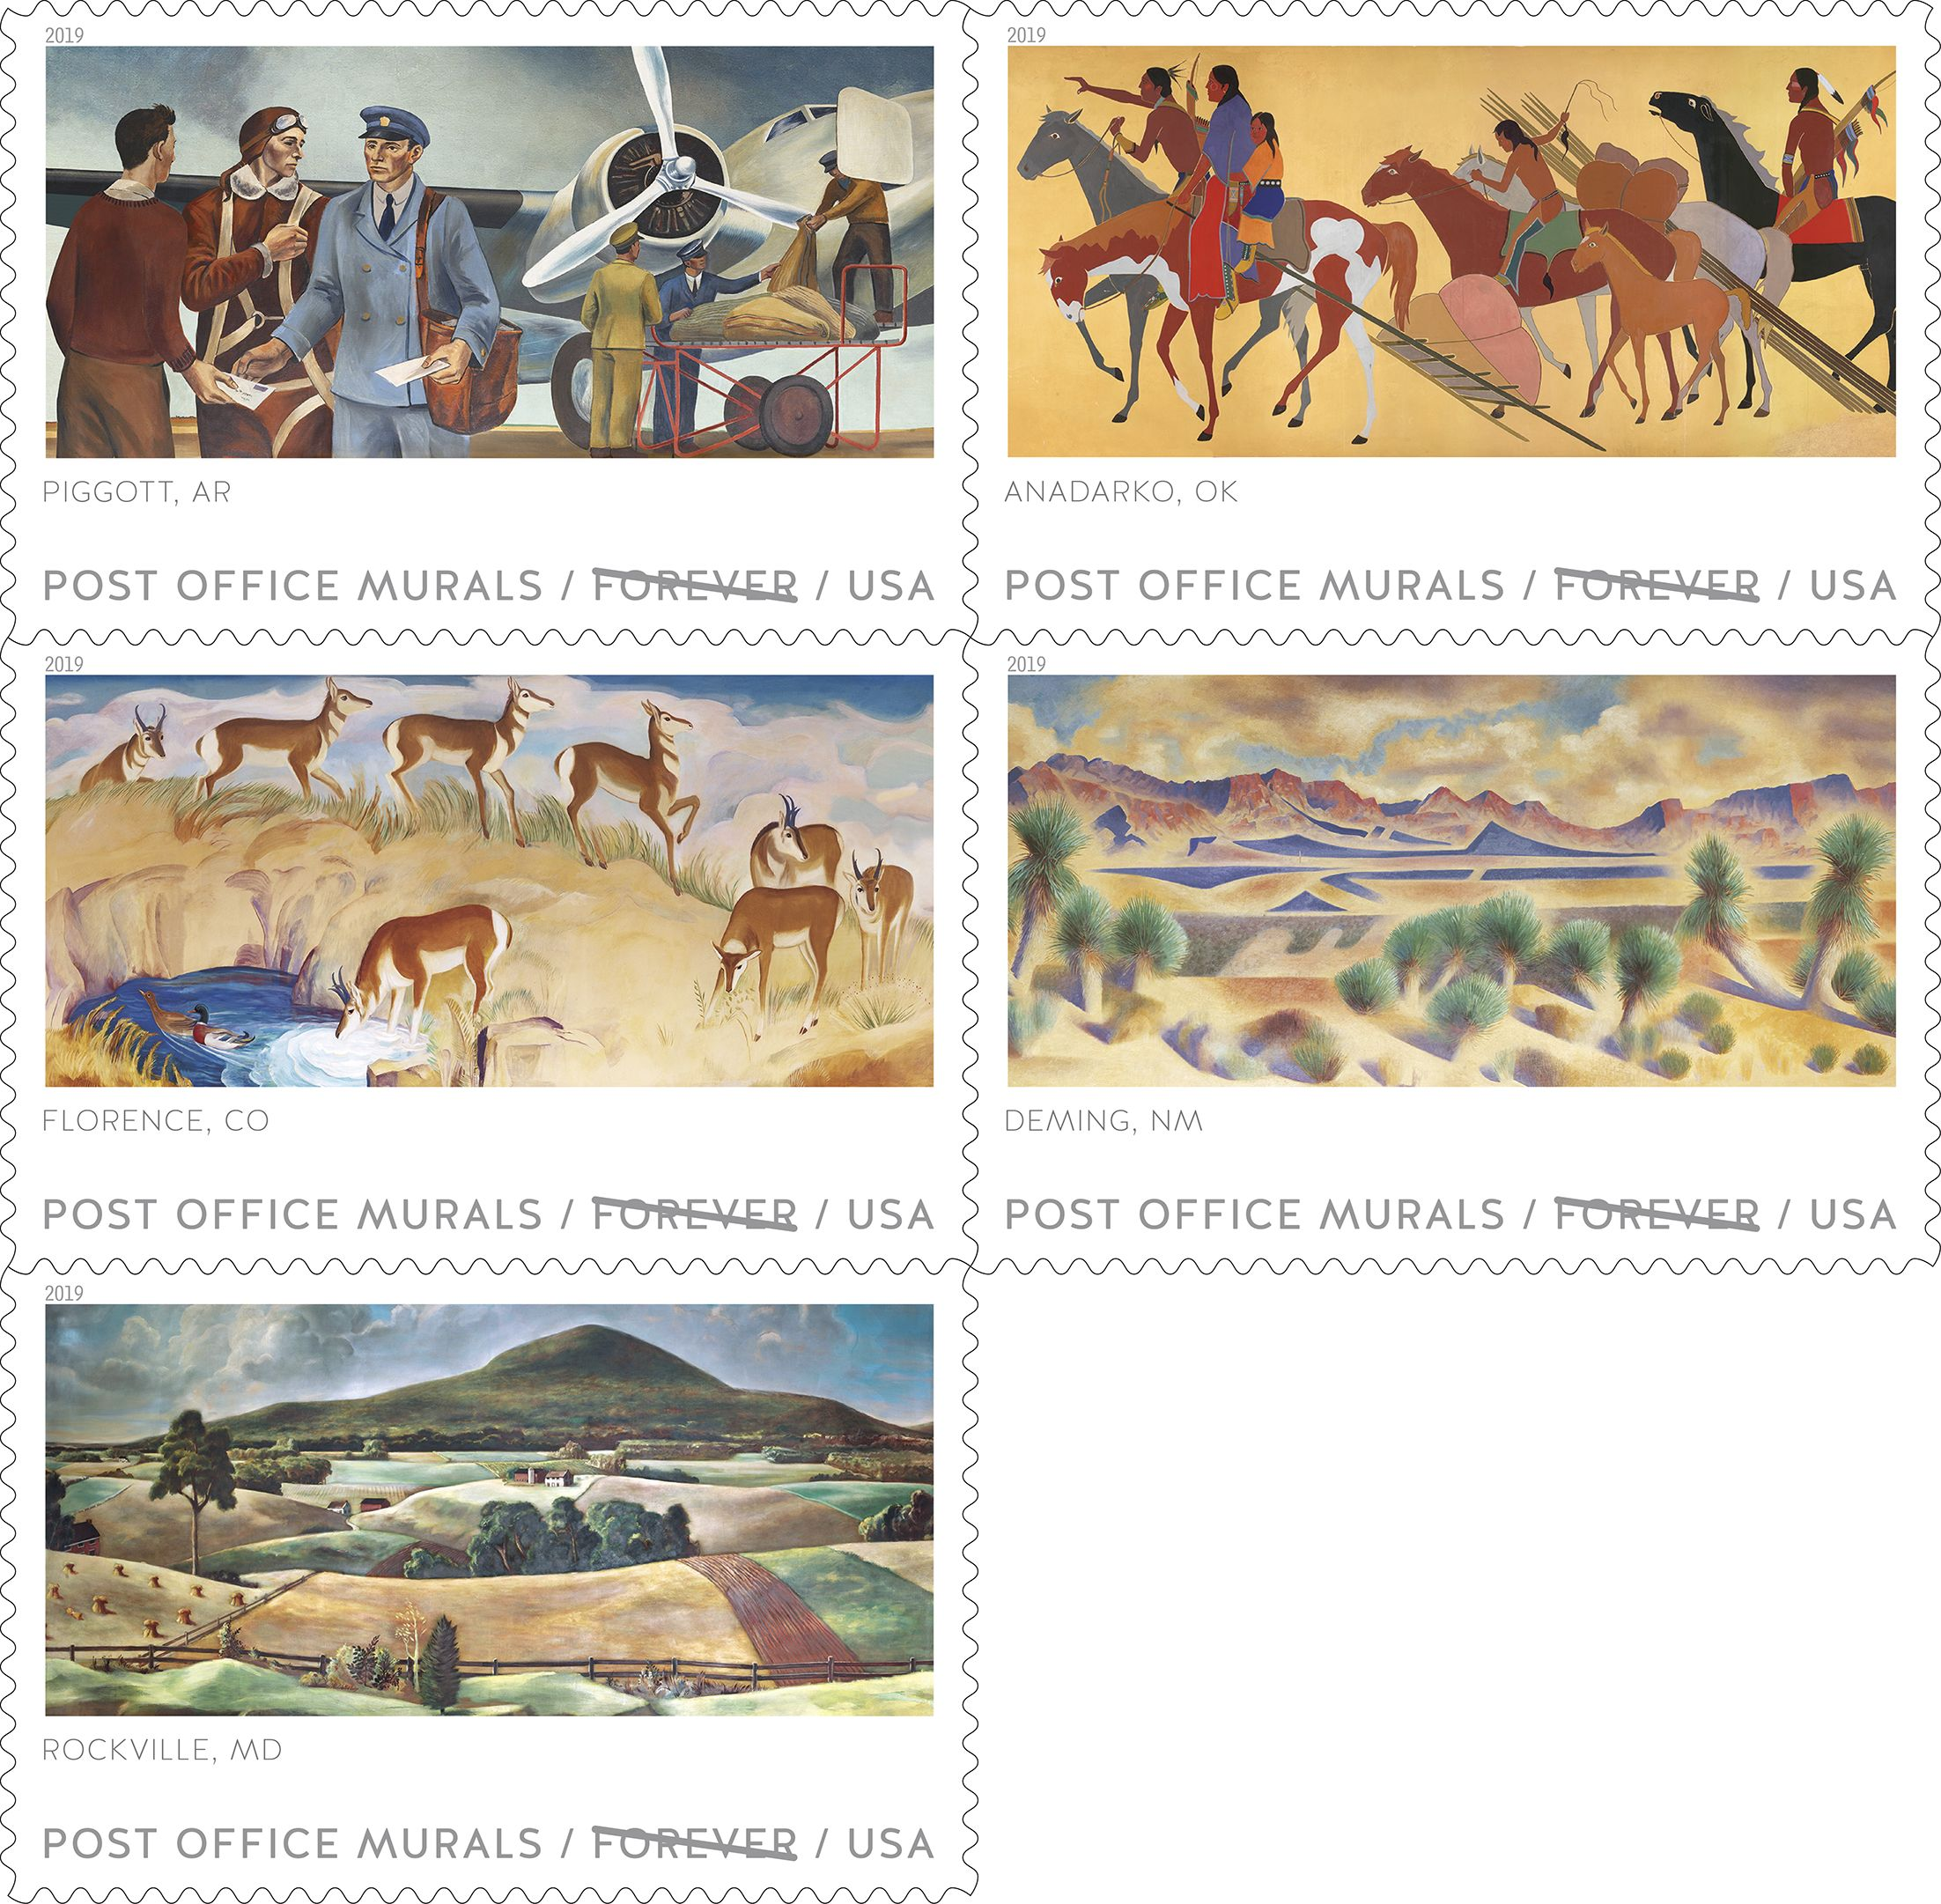 Post Office Murals - TBD 2019